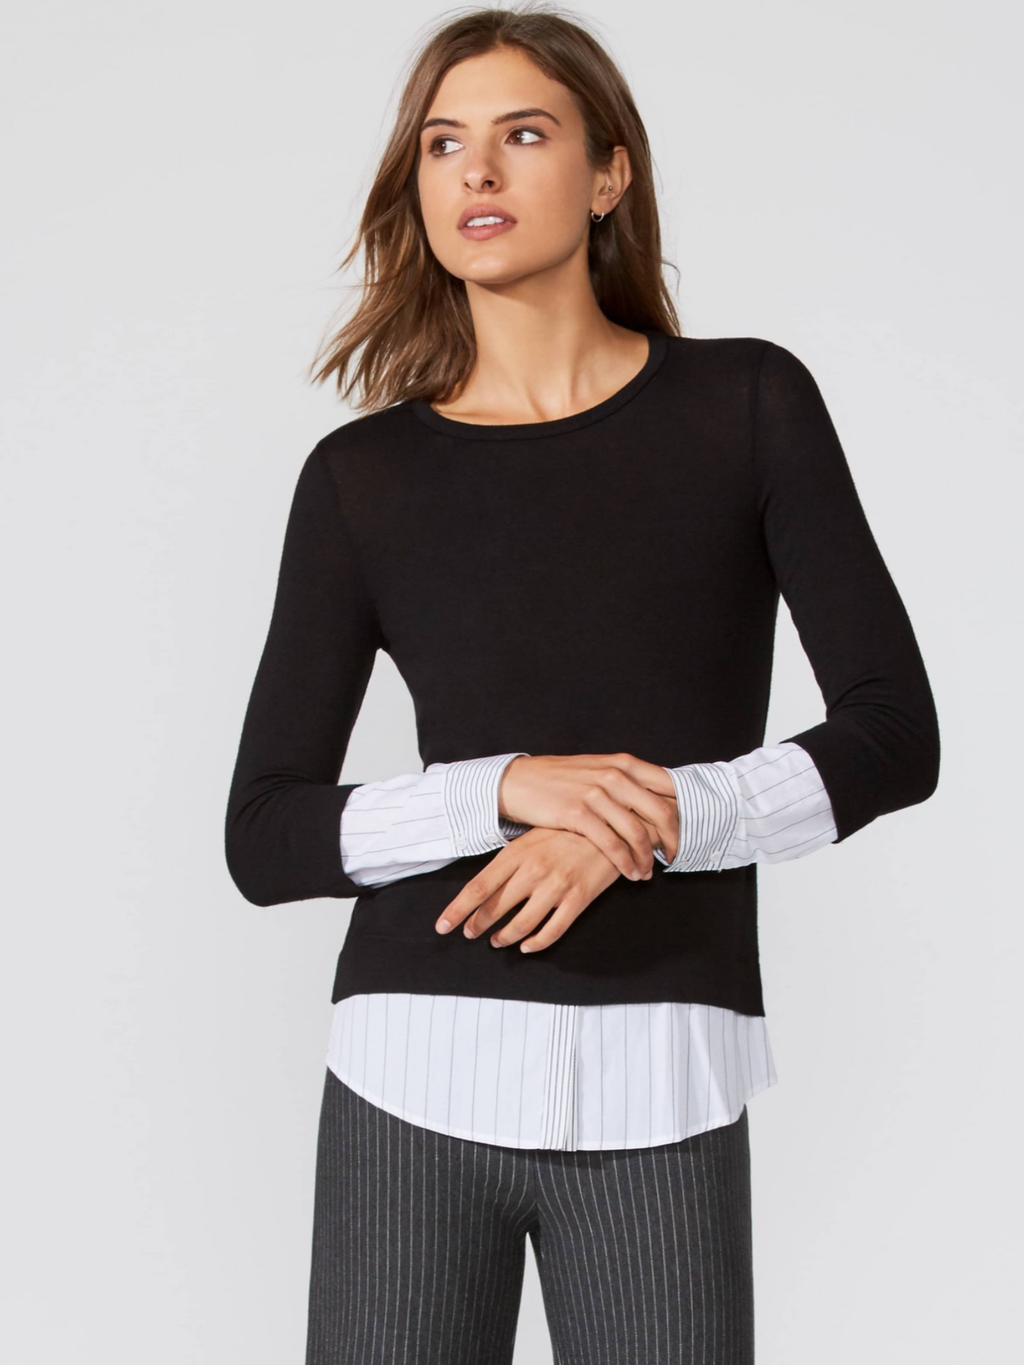 Elizabeth III Sweater Top